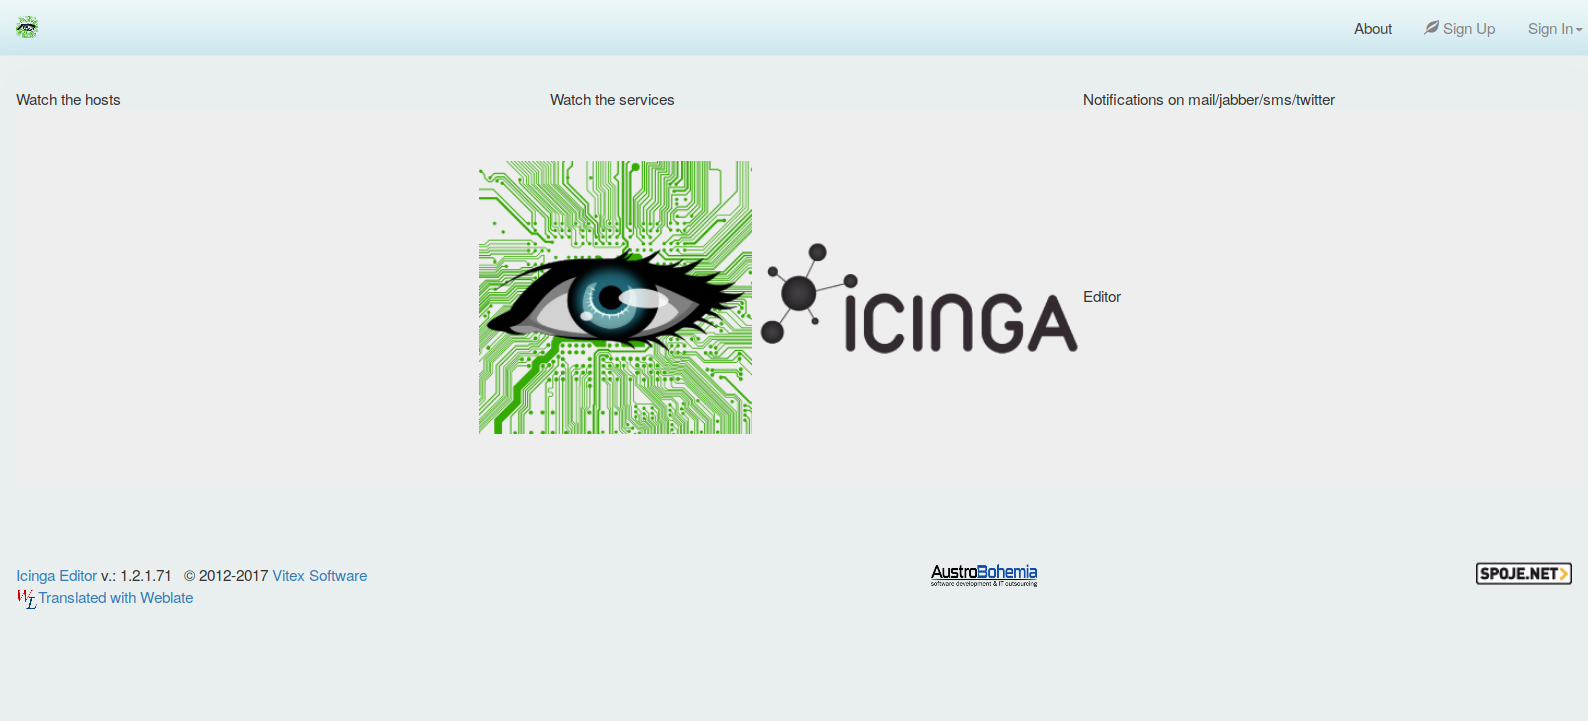 http://v.s.cz/img/Icinga%20Editor%20Switched%20To%20English%20Now.png